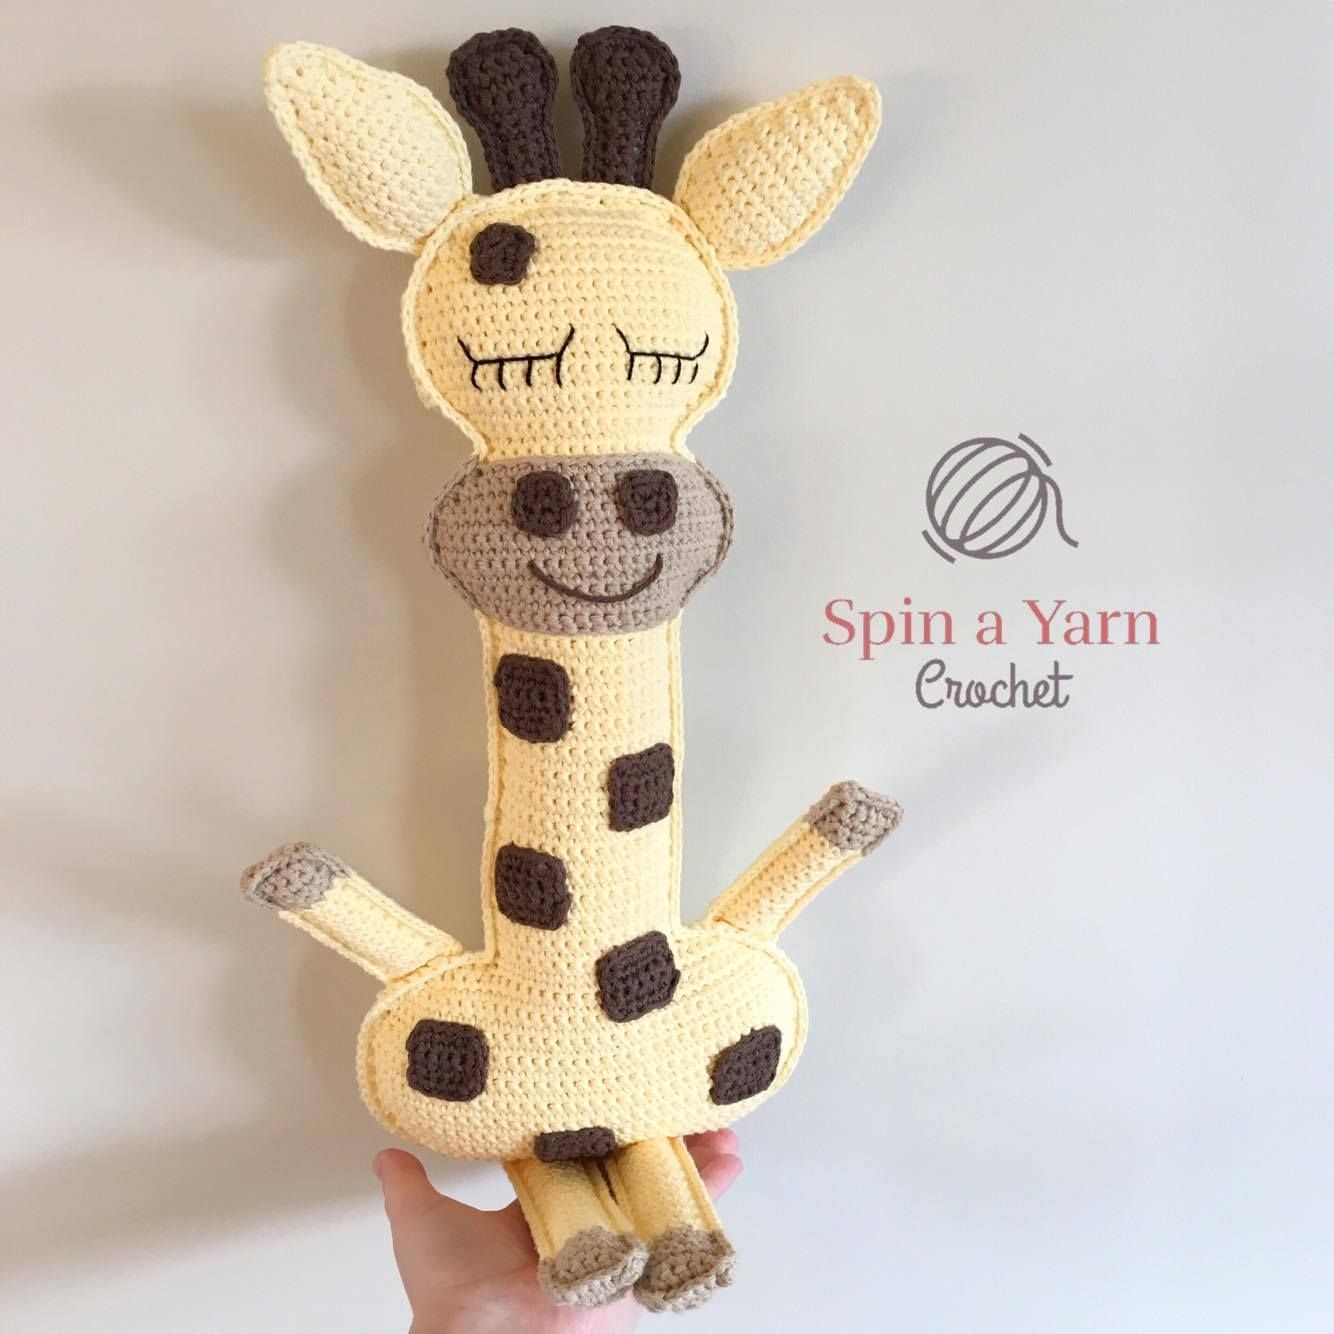 Ragdoll Giraffe by Spin a Yarn Crochet | Crochet pillows | Pinterest ...